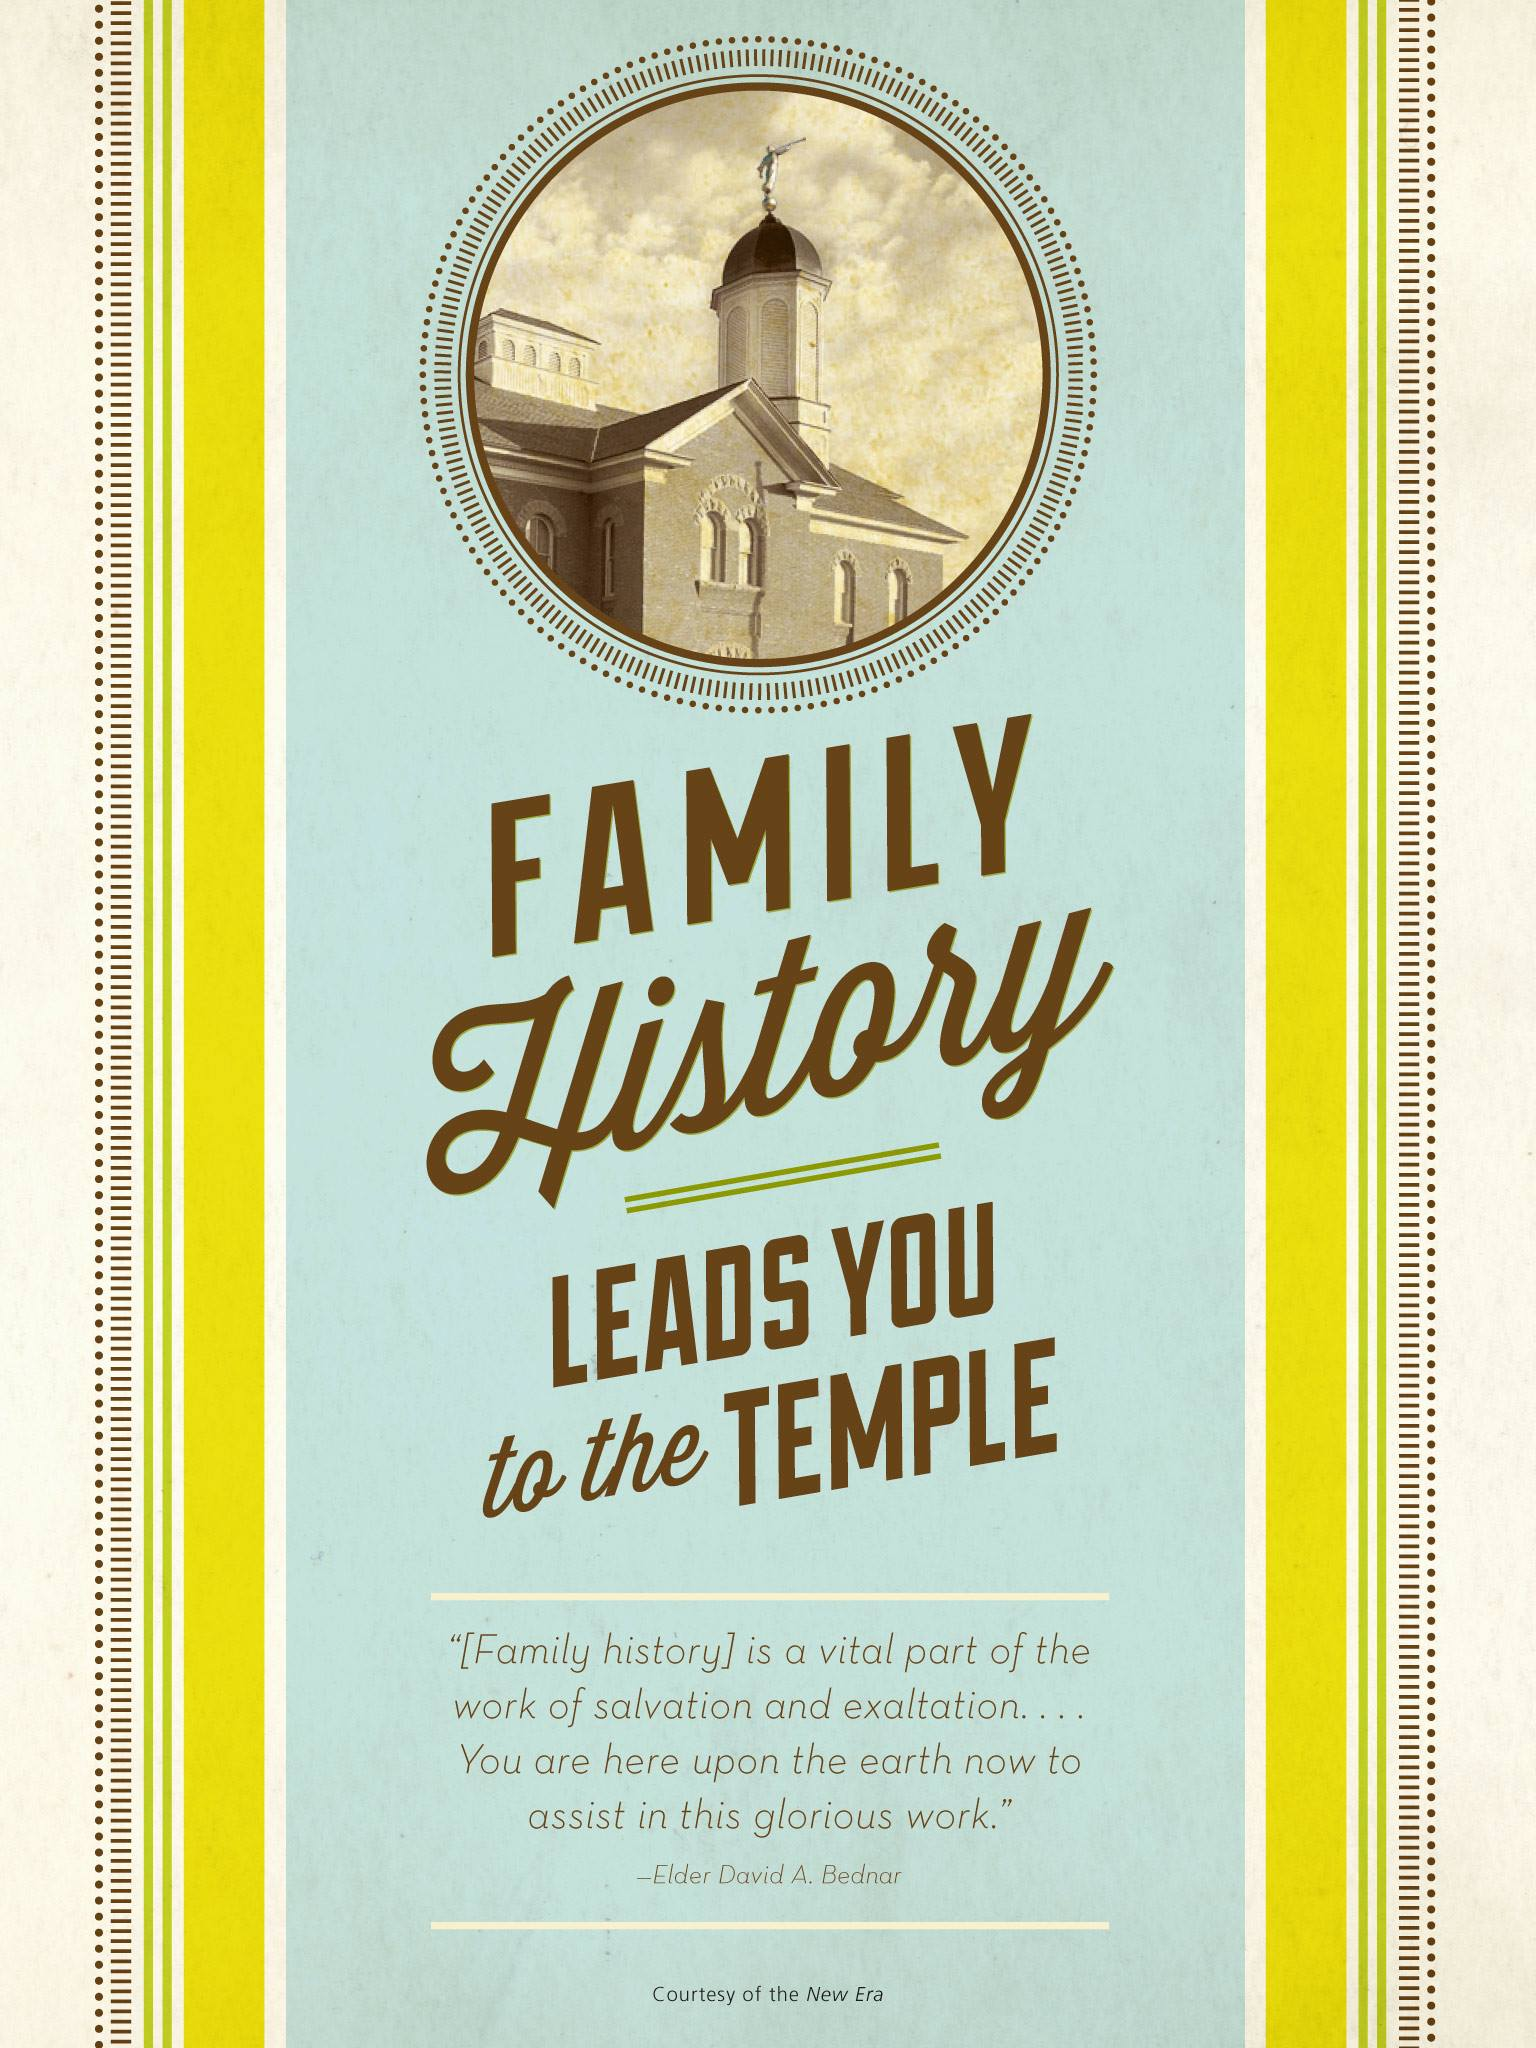 Family History Leads To The Temple